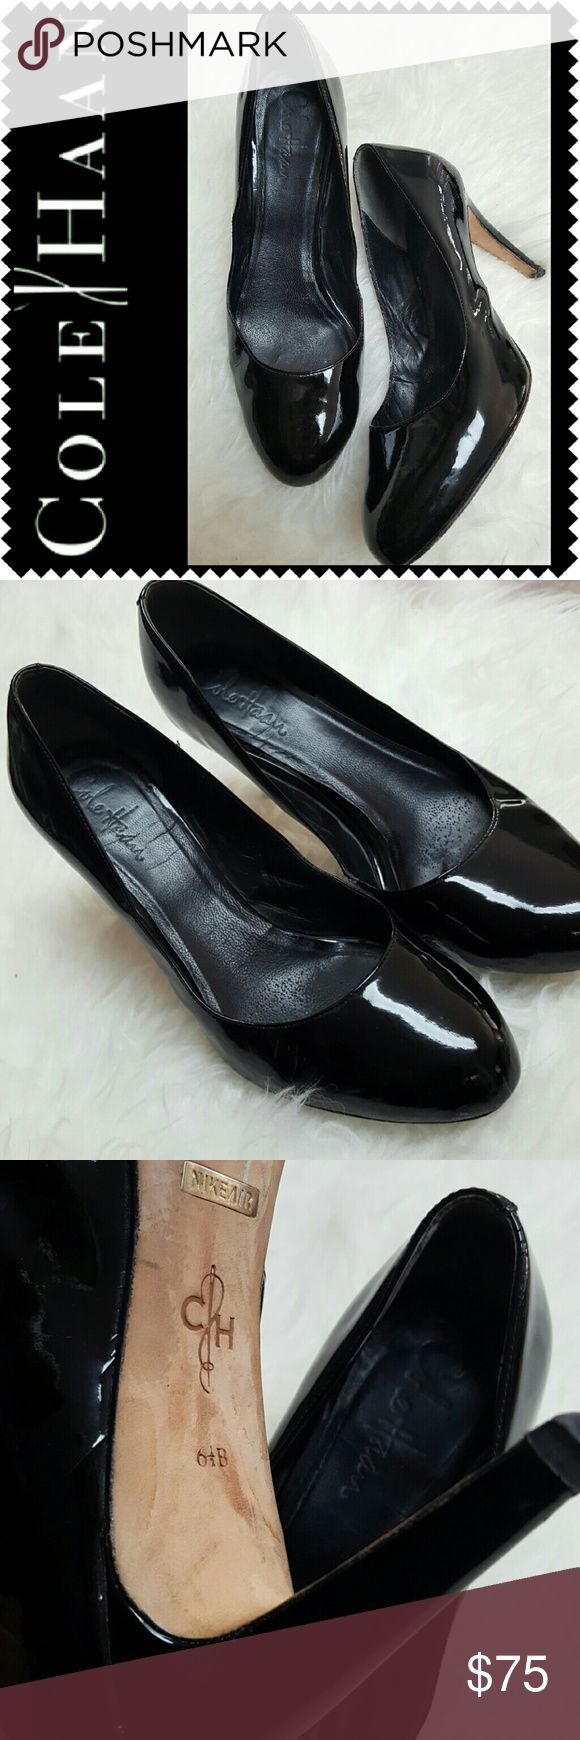 Cole Haan Patent Leather Pumps Cole Haan Signature Shoes in Classic Black! Shiny Patent Leather Style with Round Toe! About 3.5 inches Heels, a Cole Haan Must!  Features Nike Air Technology for Excellent Comfort and Grip! Worn in Good Condition! Cole Haan Shoes Heels